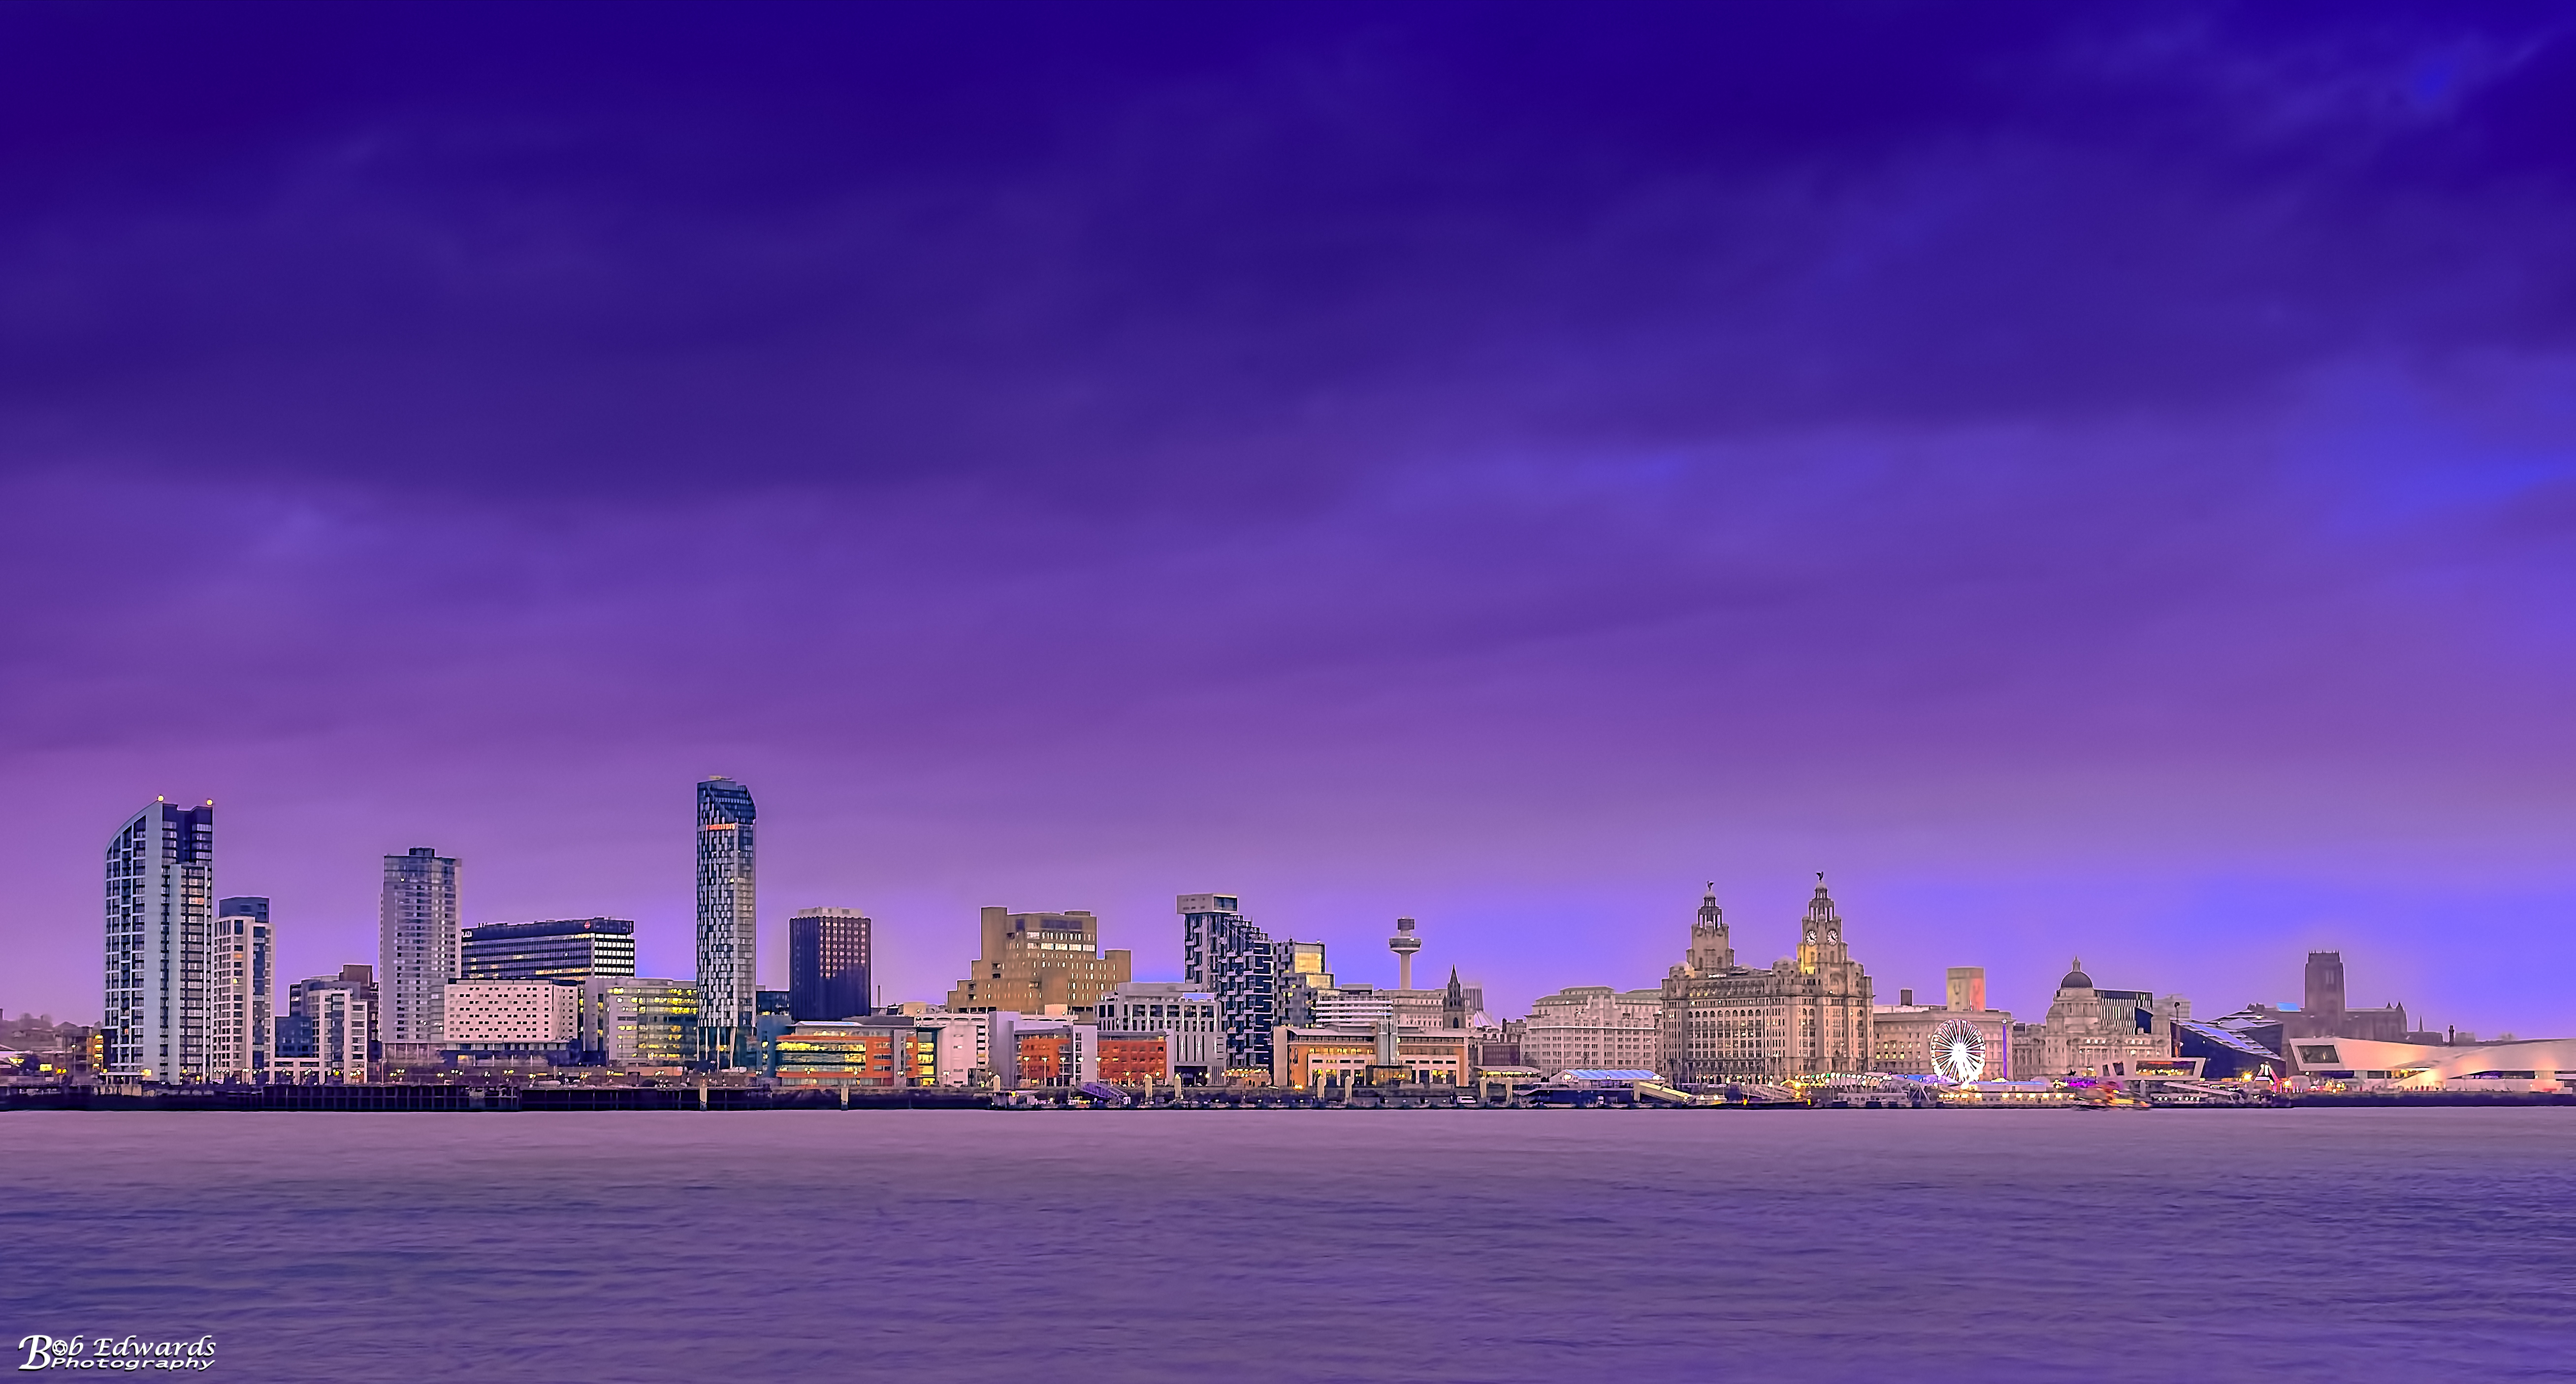 Liverpool Waterfront on 29th December 2017